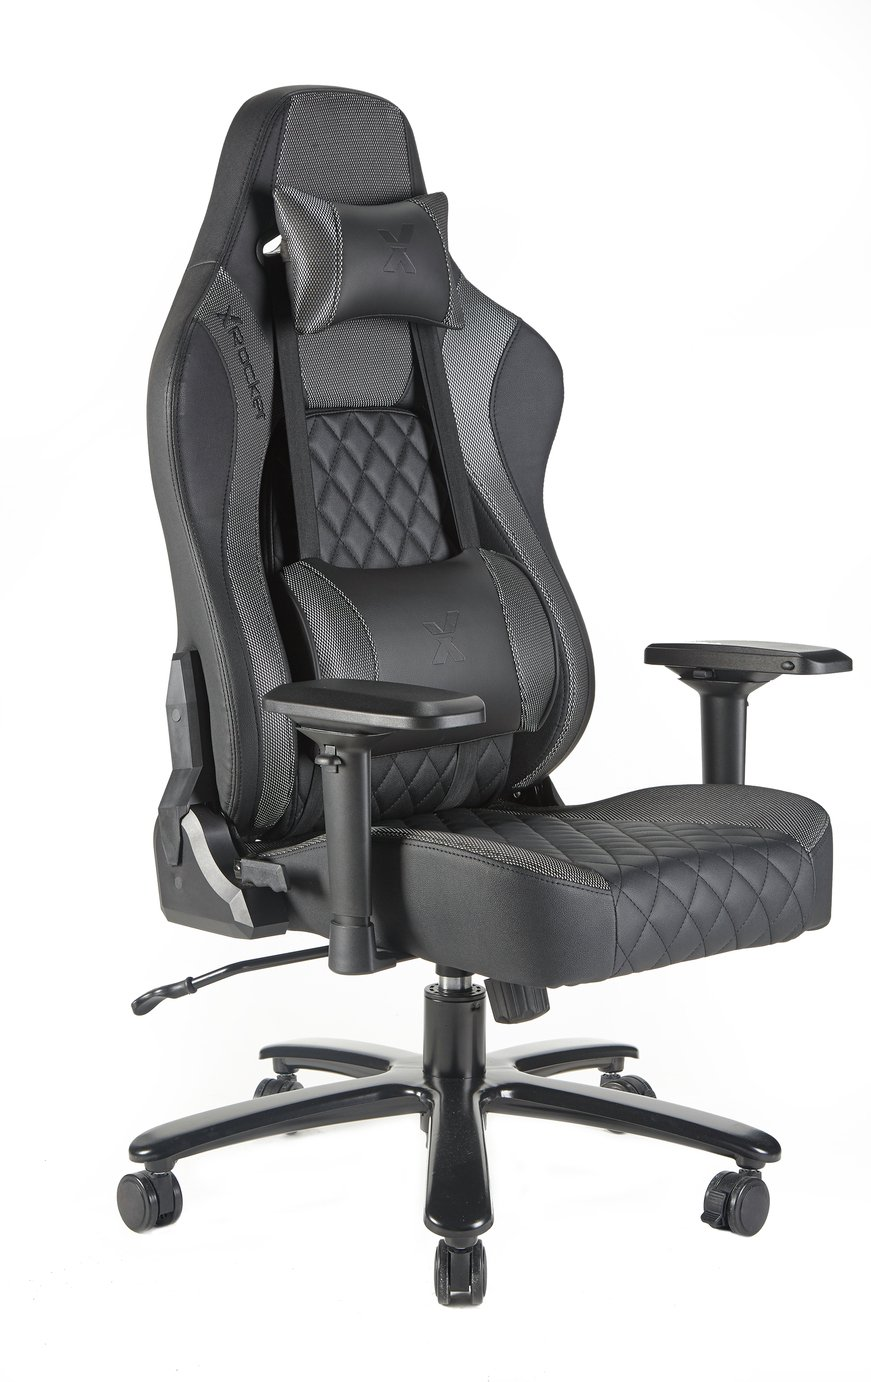 X Rocker Delta Pro Series IV Gaming Chair - Silver